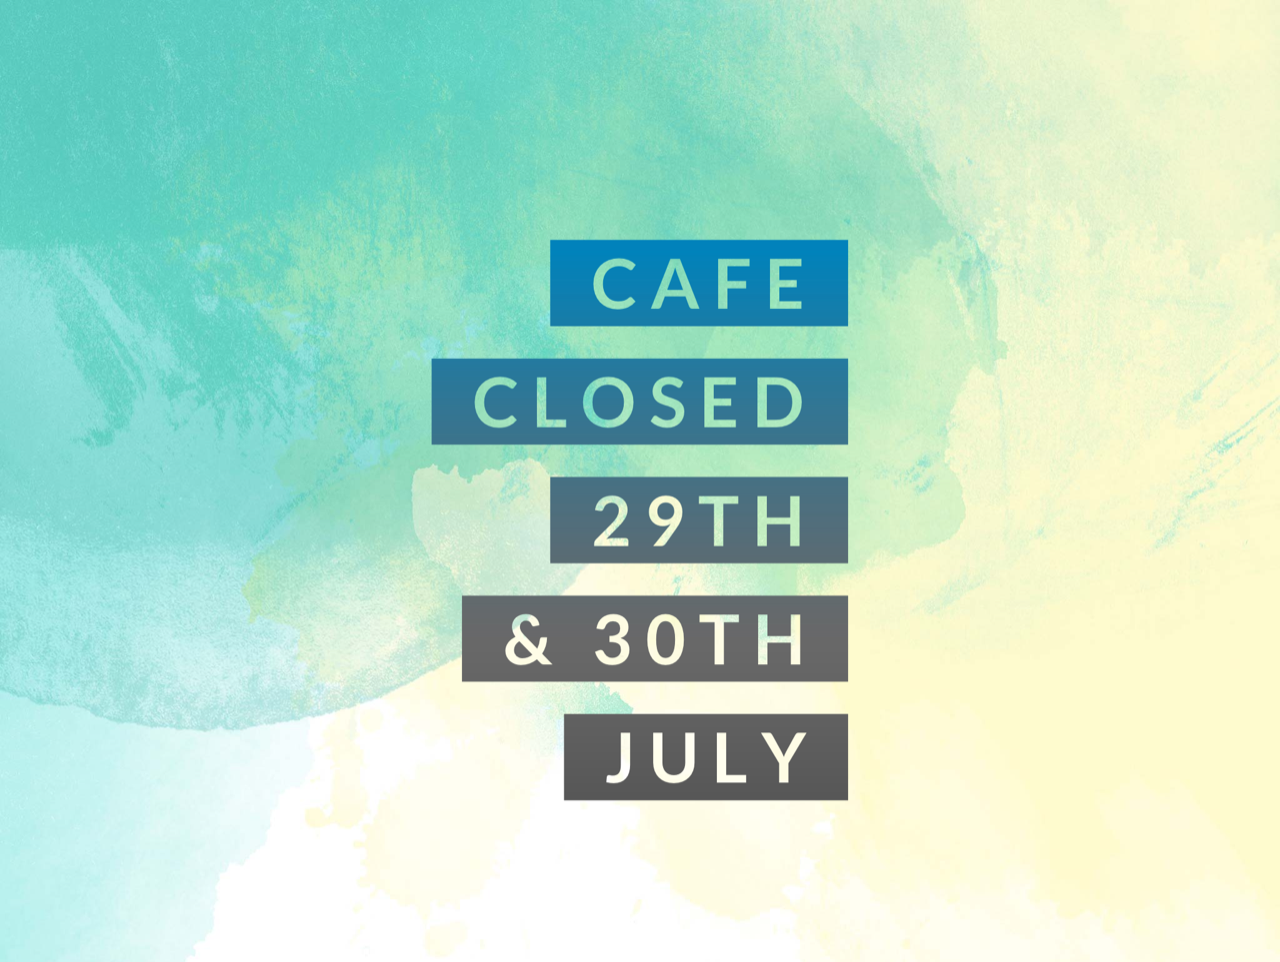 Cafe closed 29-30 July